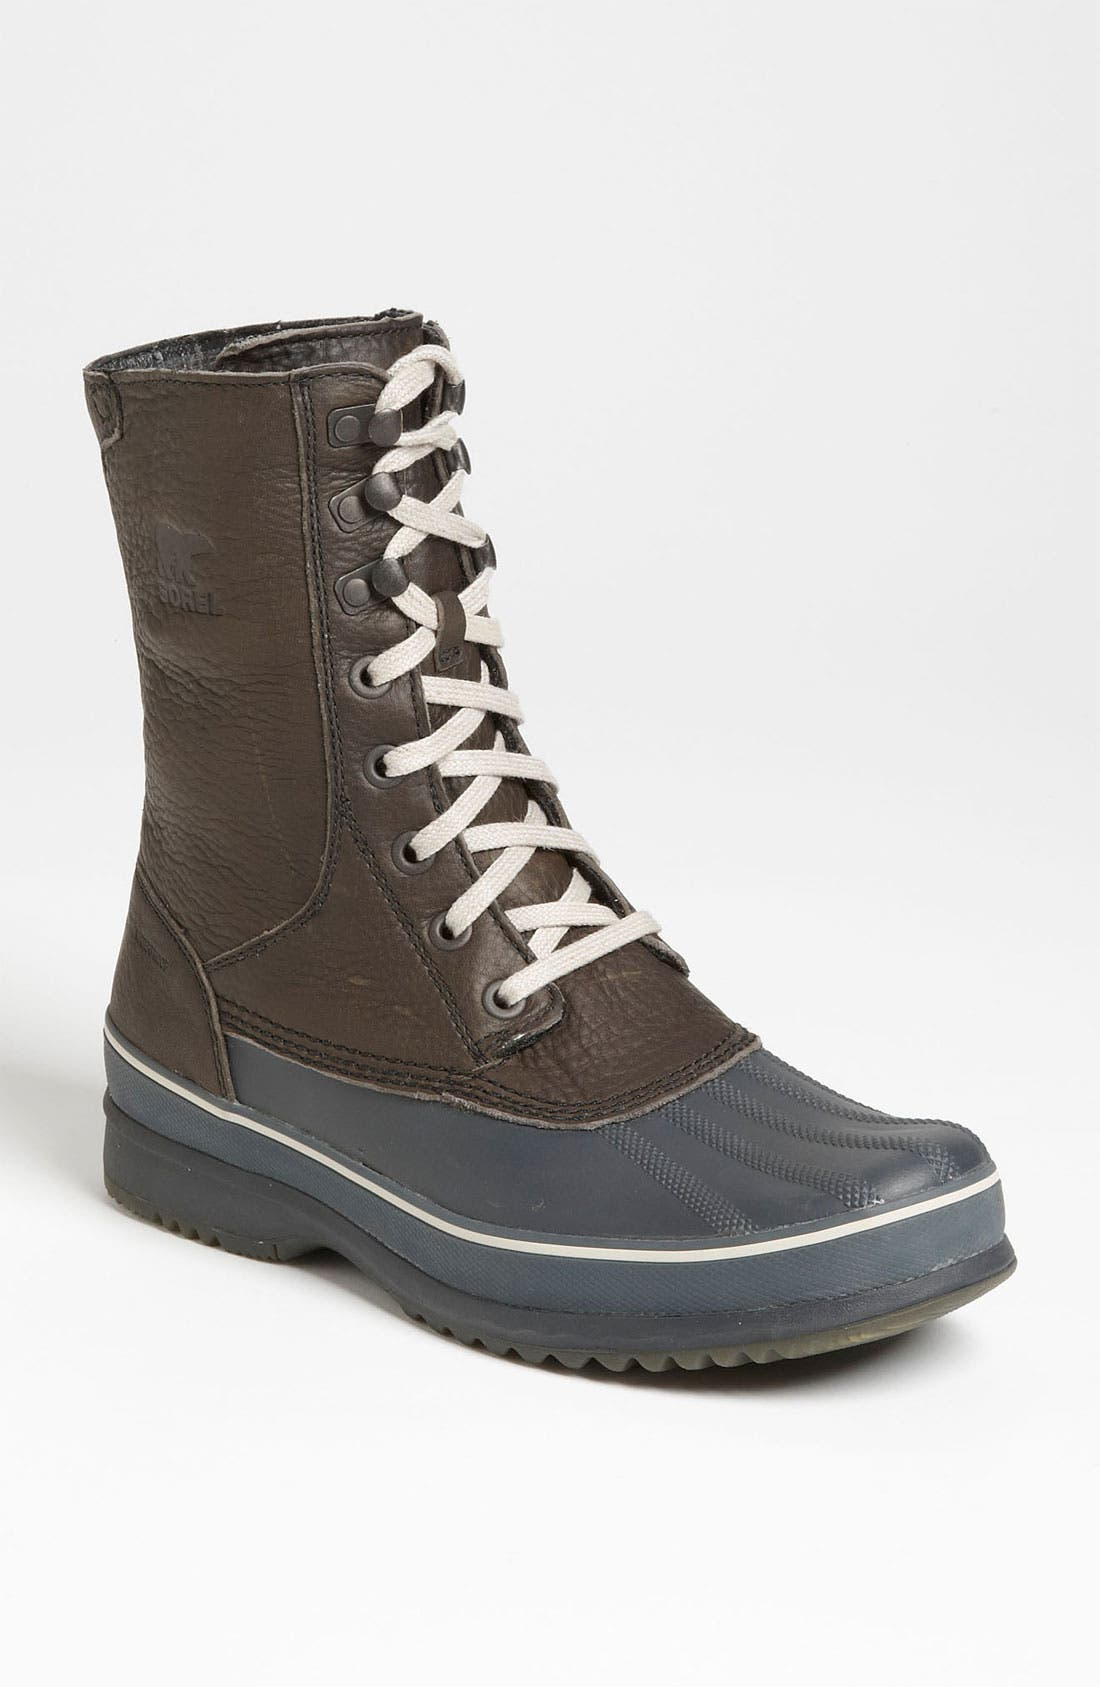 Alternate Image 1 Selected - Sorel 'Kitchener Frost' Snow Boot (Online Only)